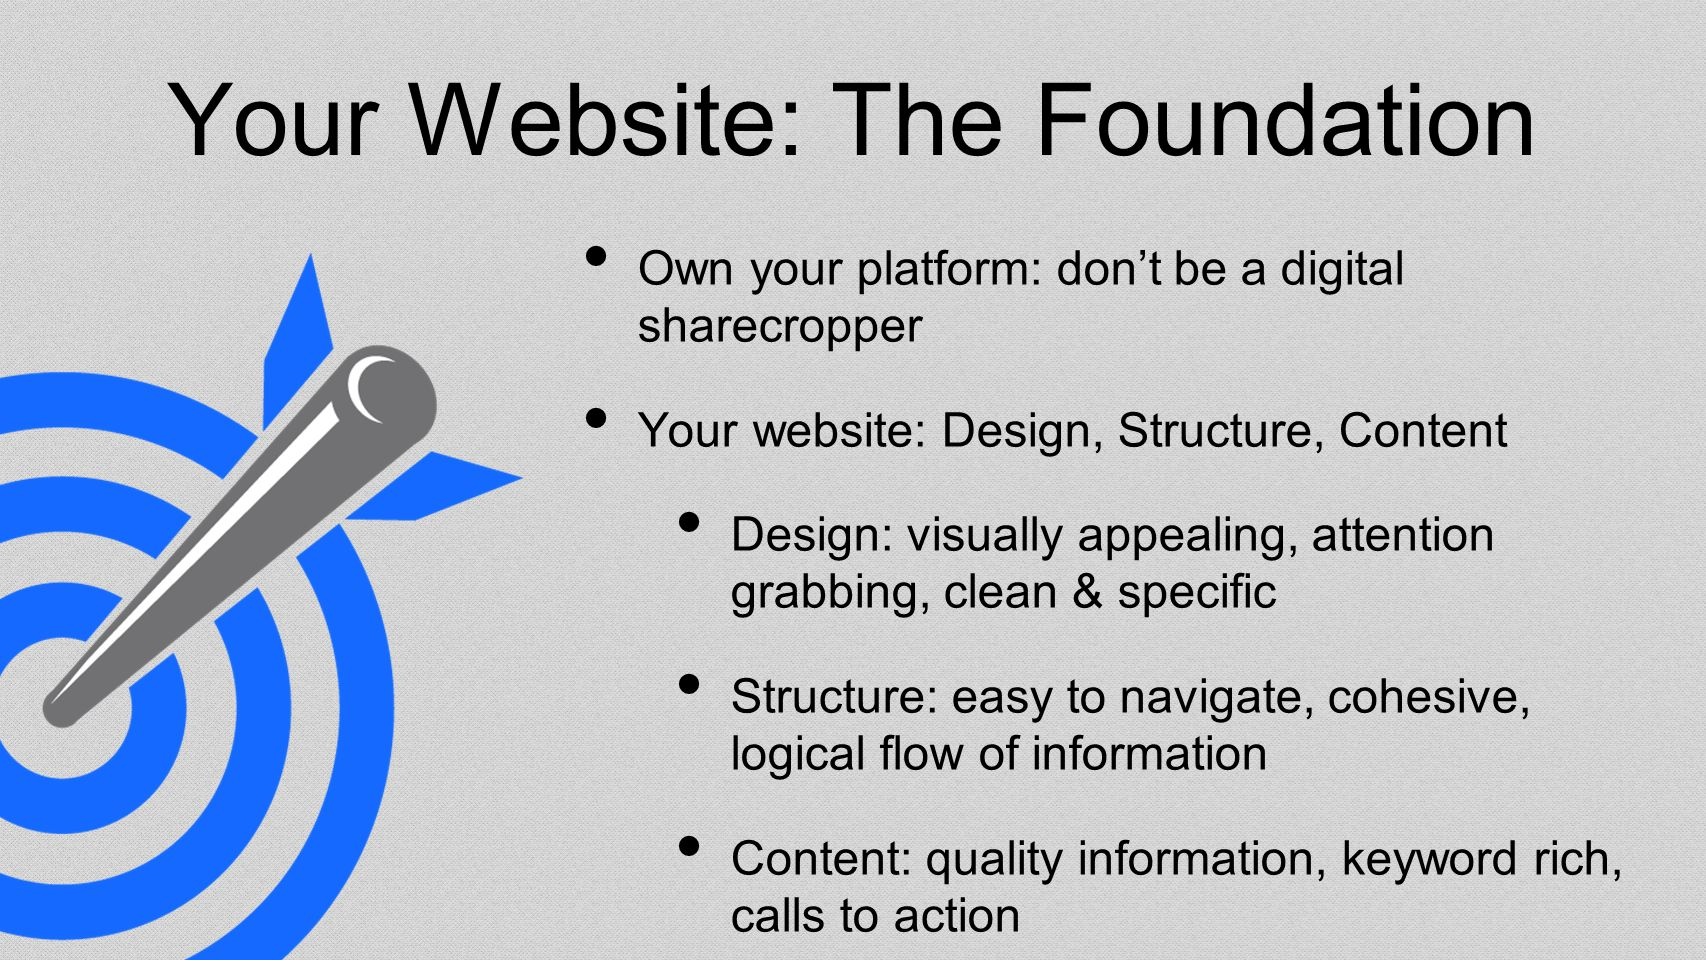 Your Website: The Foundation Own your platform: dont be a digital sharecropper Your website: Design, Structure, Content Design: visually appealing, attention grabbing, clean & specific Structure: easy to navigate, cohesive, logical flow of information Content: quality information, keyword rich, calls to action